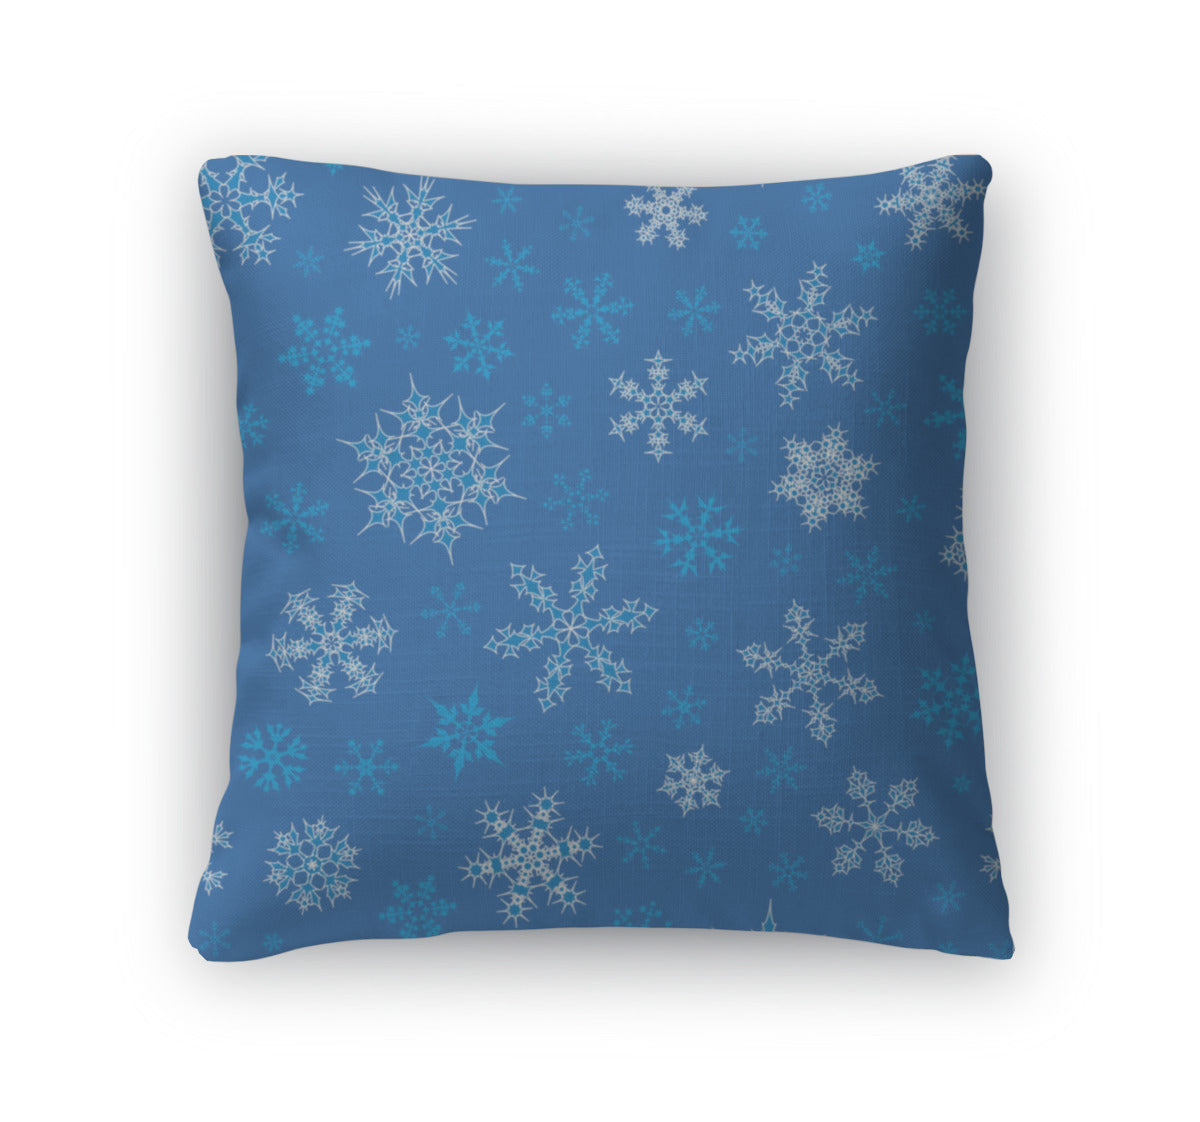 Throw Pillow, Snowflakes Pattern - fashionbests